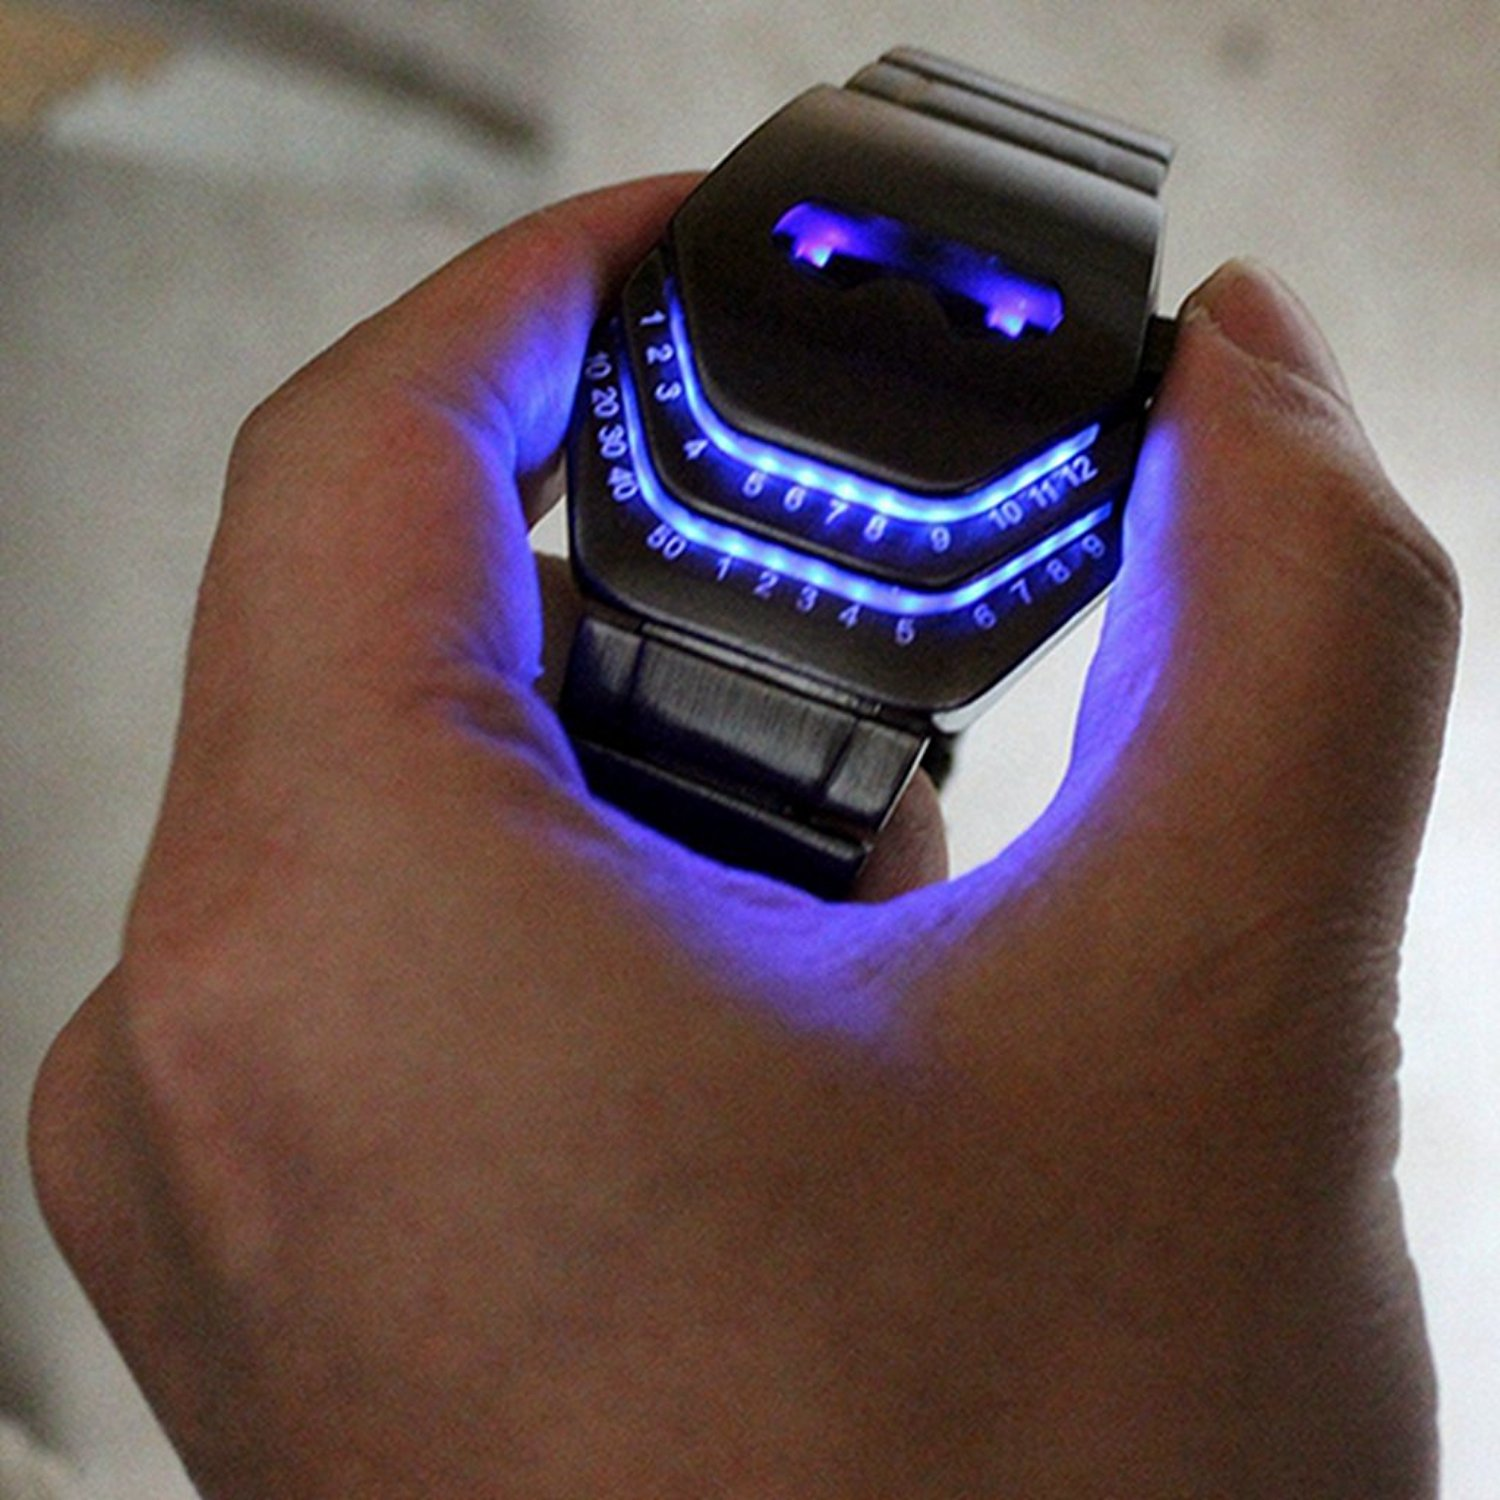 Soleasy Men S Peculiar Cool Gadgets Interesting Amazing Snake Head Design Blue Led Watches Wth8021 Card From User Novmove In Yandex